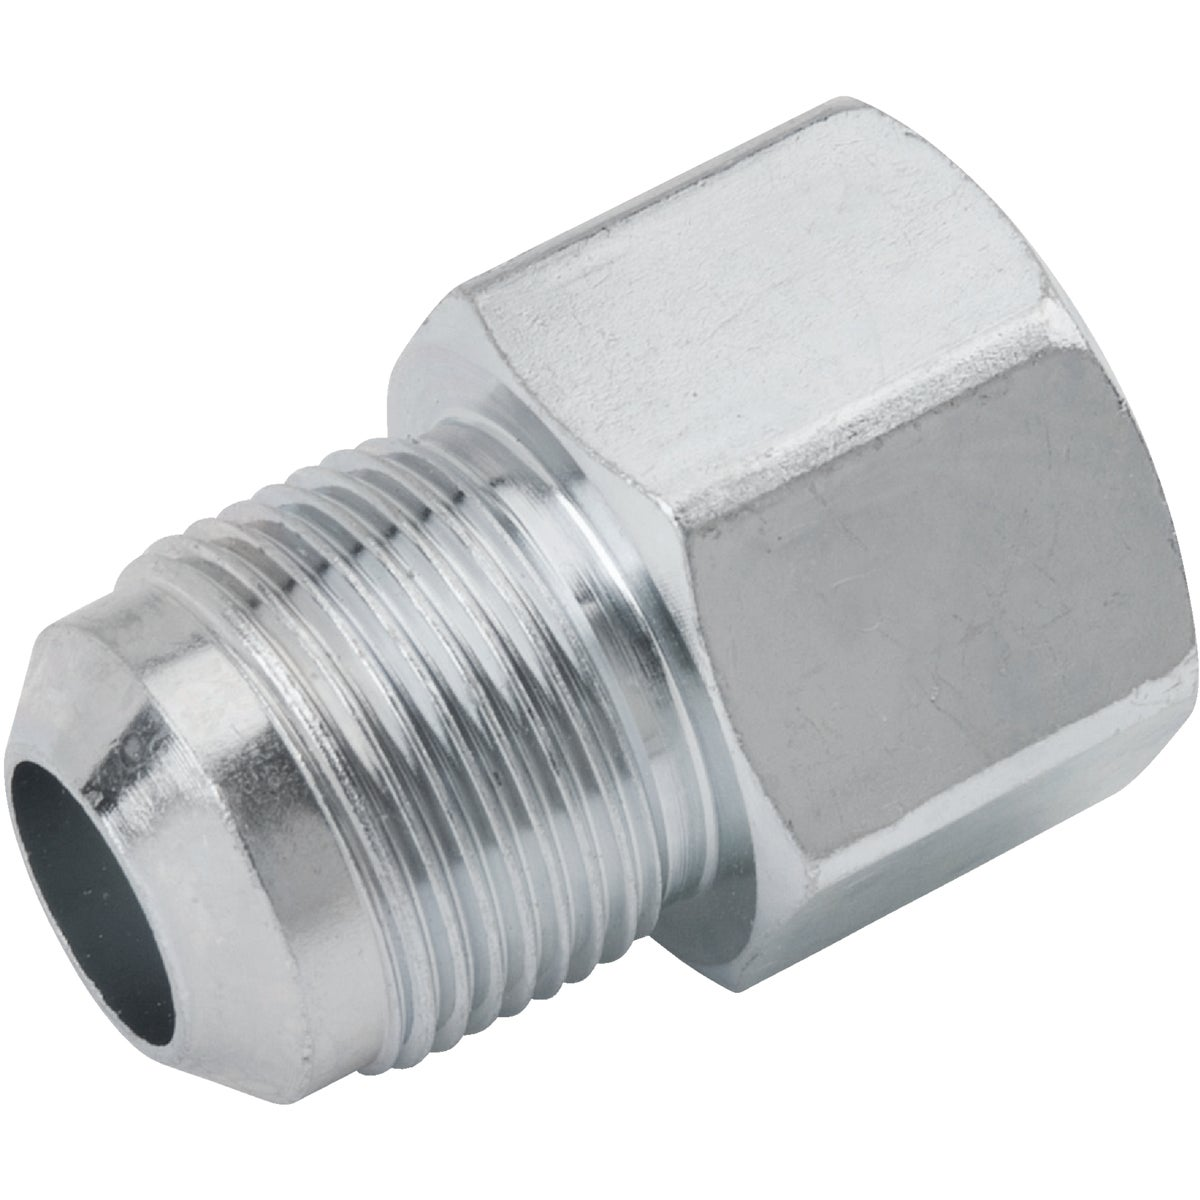 5/8ODX3/4 GAS FITTING